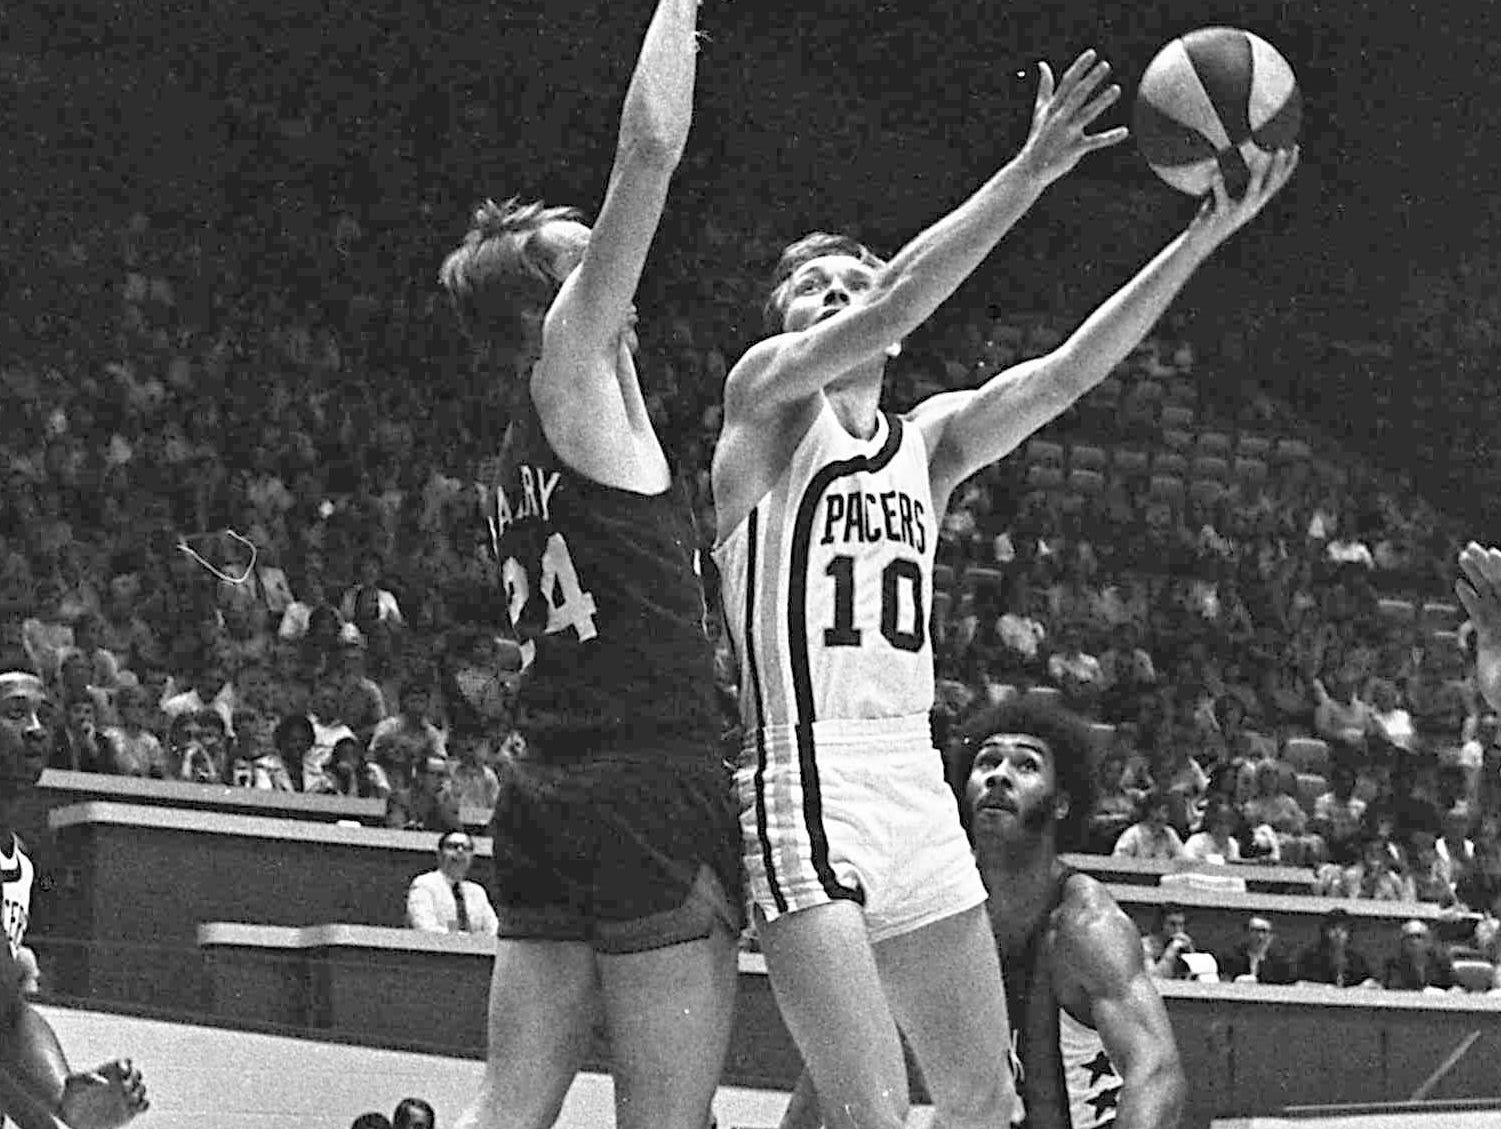 Rick Mount averaged 11.8 points per game in five injury-plagued seasons with the Pacers.